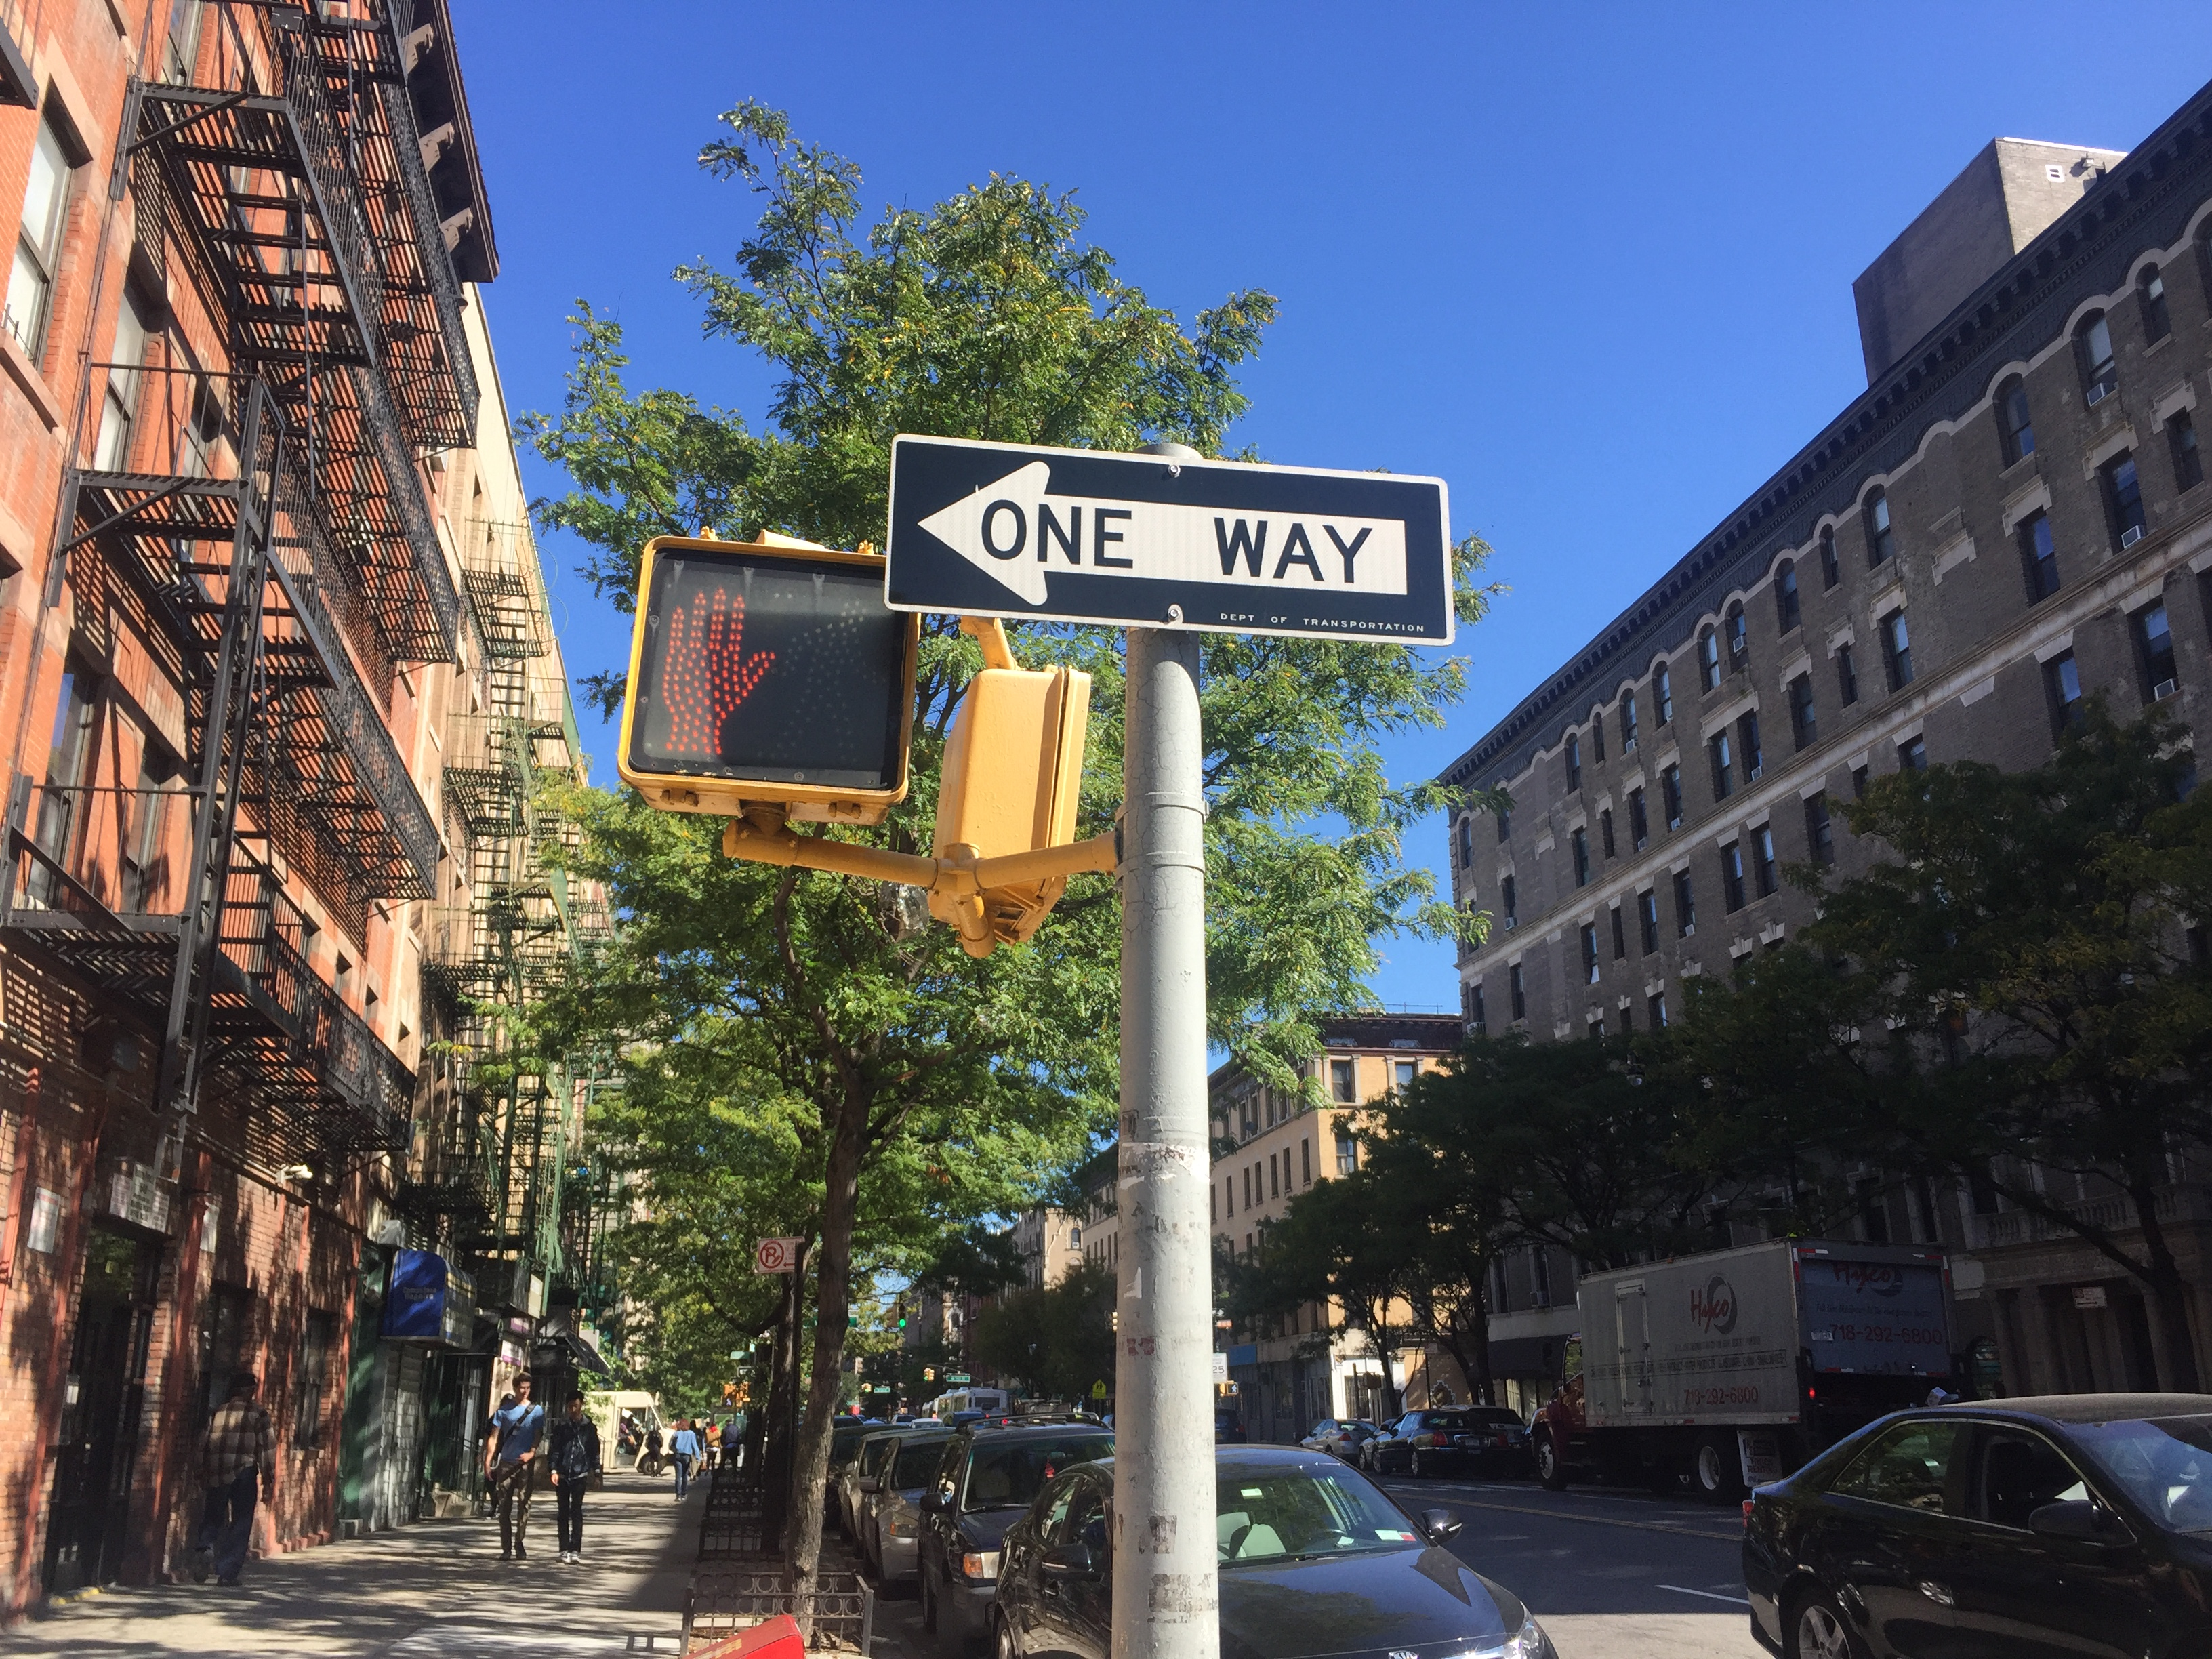 Are you headed down a one-way street?